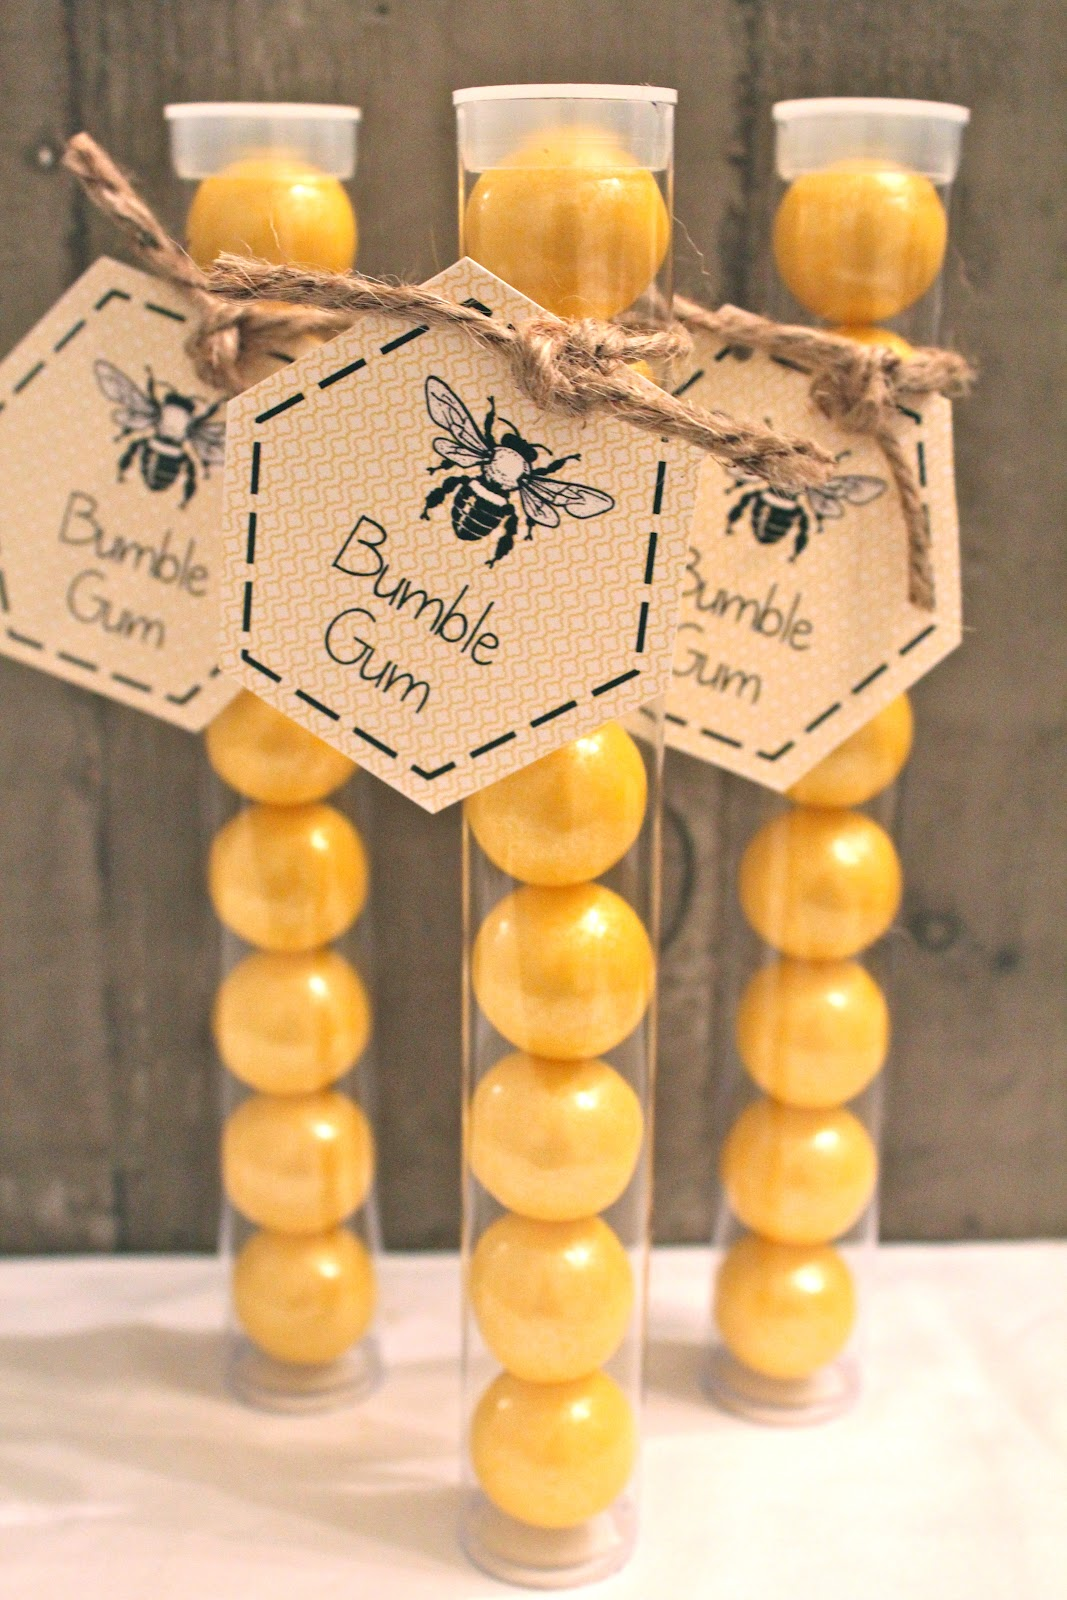 Baby Shower Is Also Available In This Design As Are Fully Assembled Bumble Gum Favors